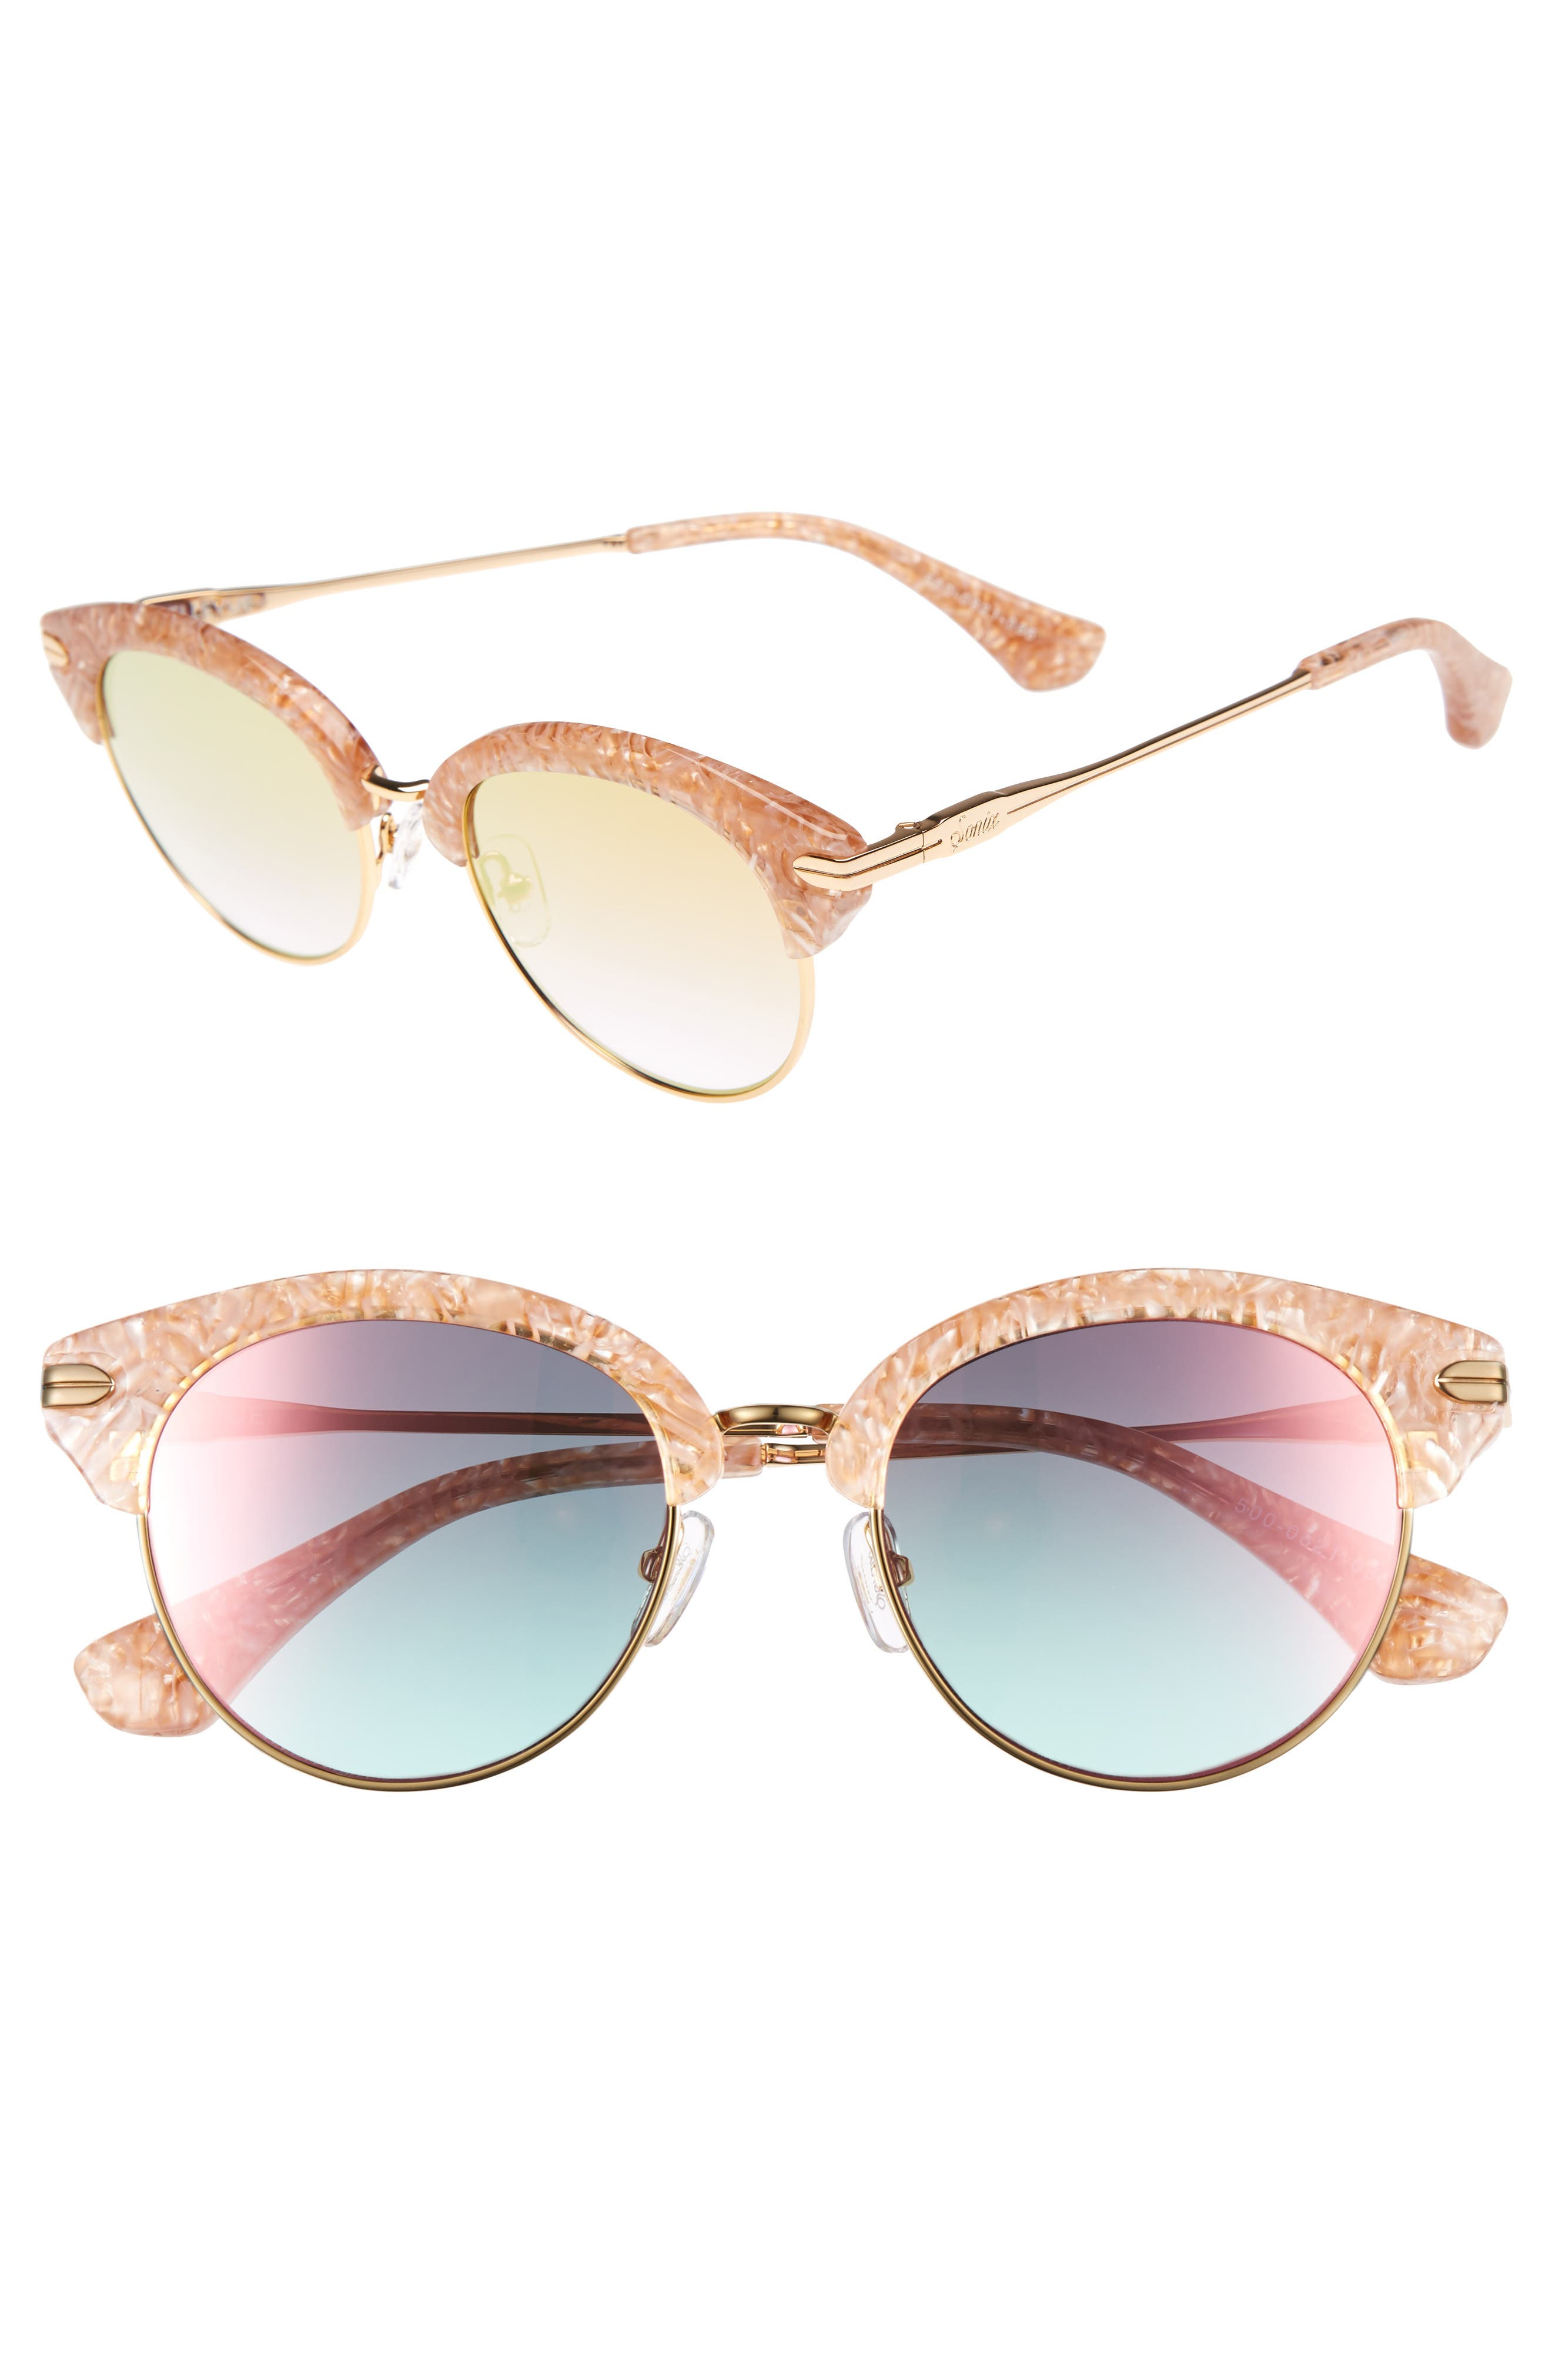 Sonix Bellevue 50mm Mirrored Sunglasses